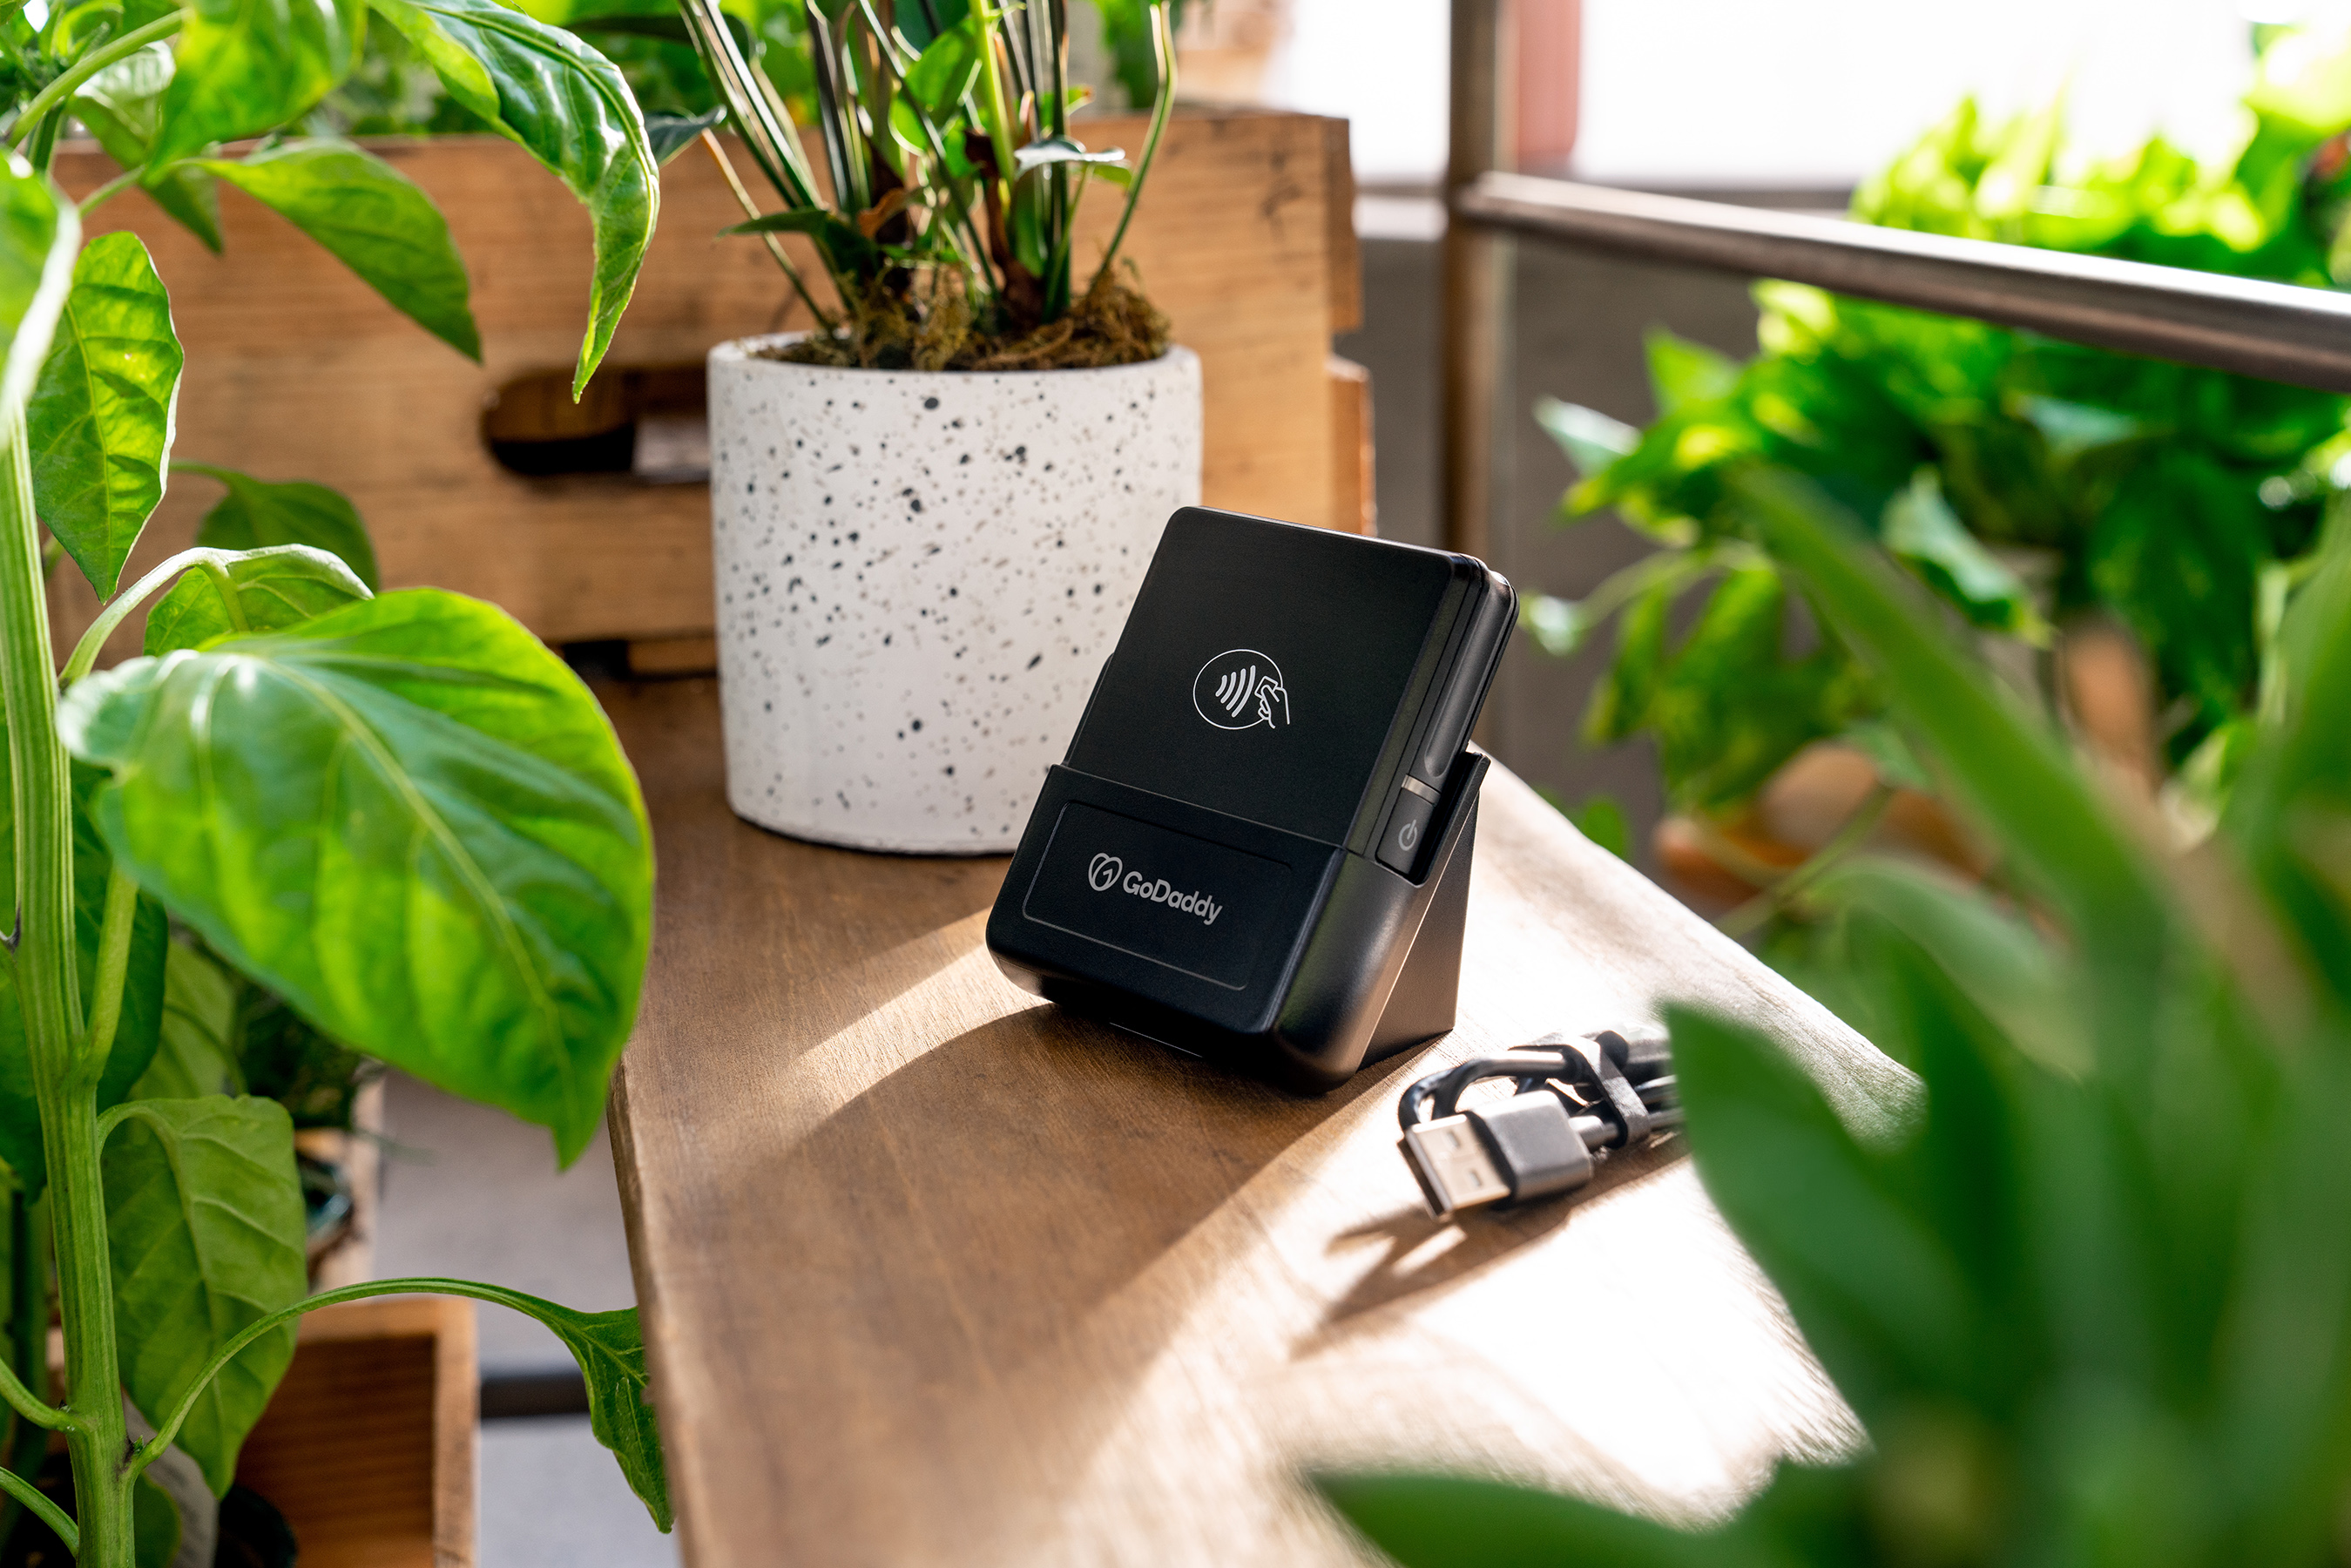 GoDaddy Card Reader comes with a free docking station and has a battery that lasts all day.